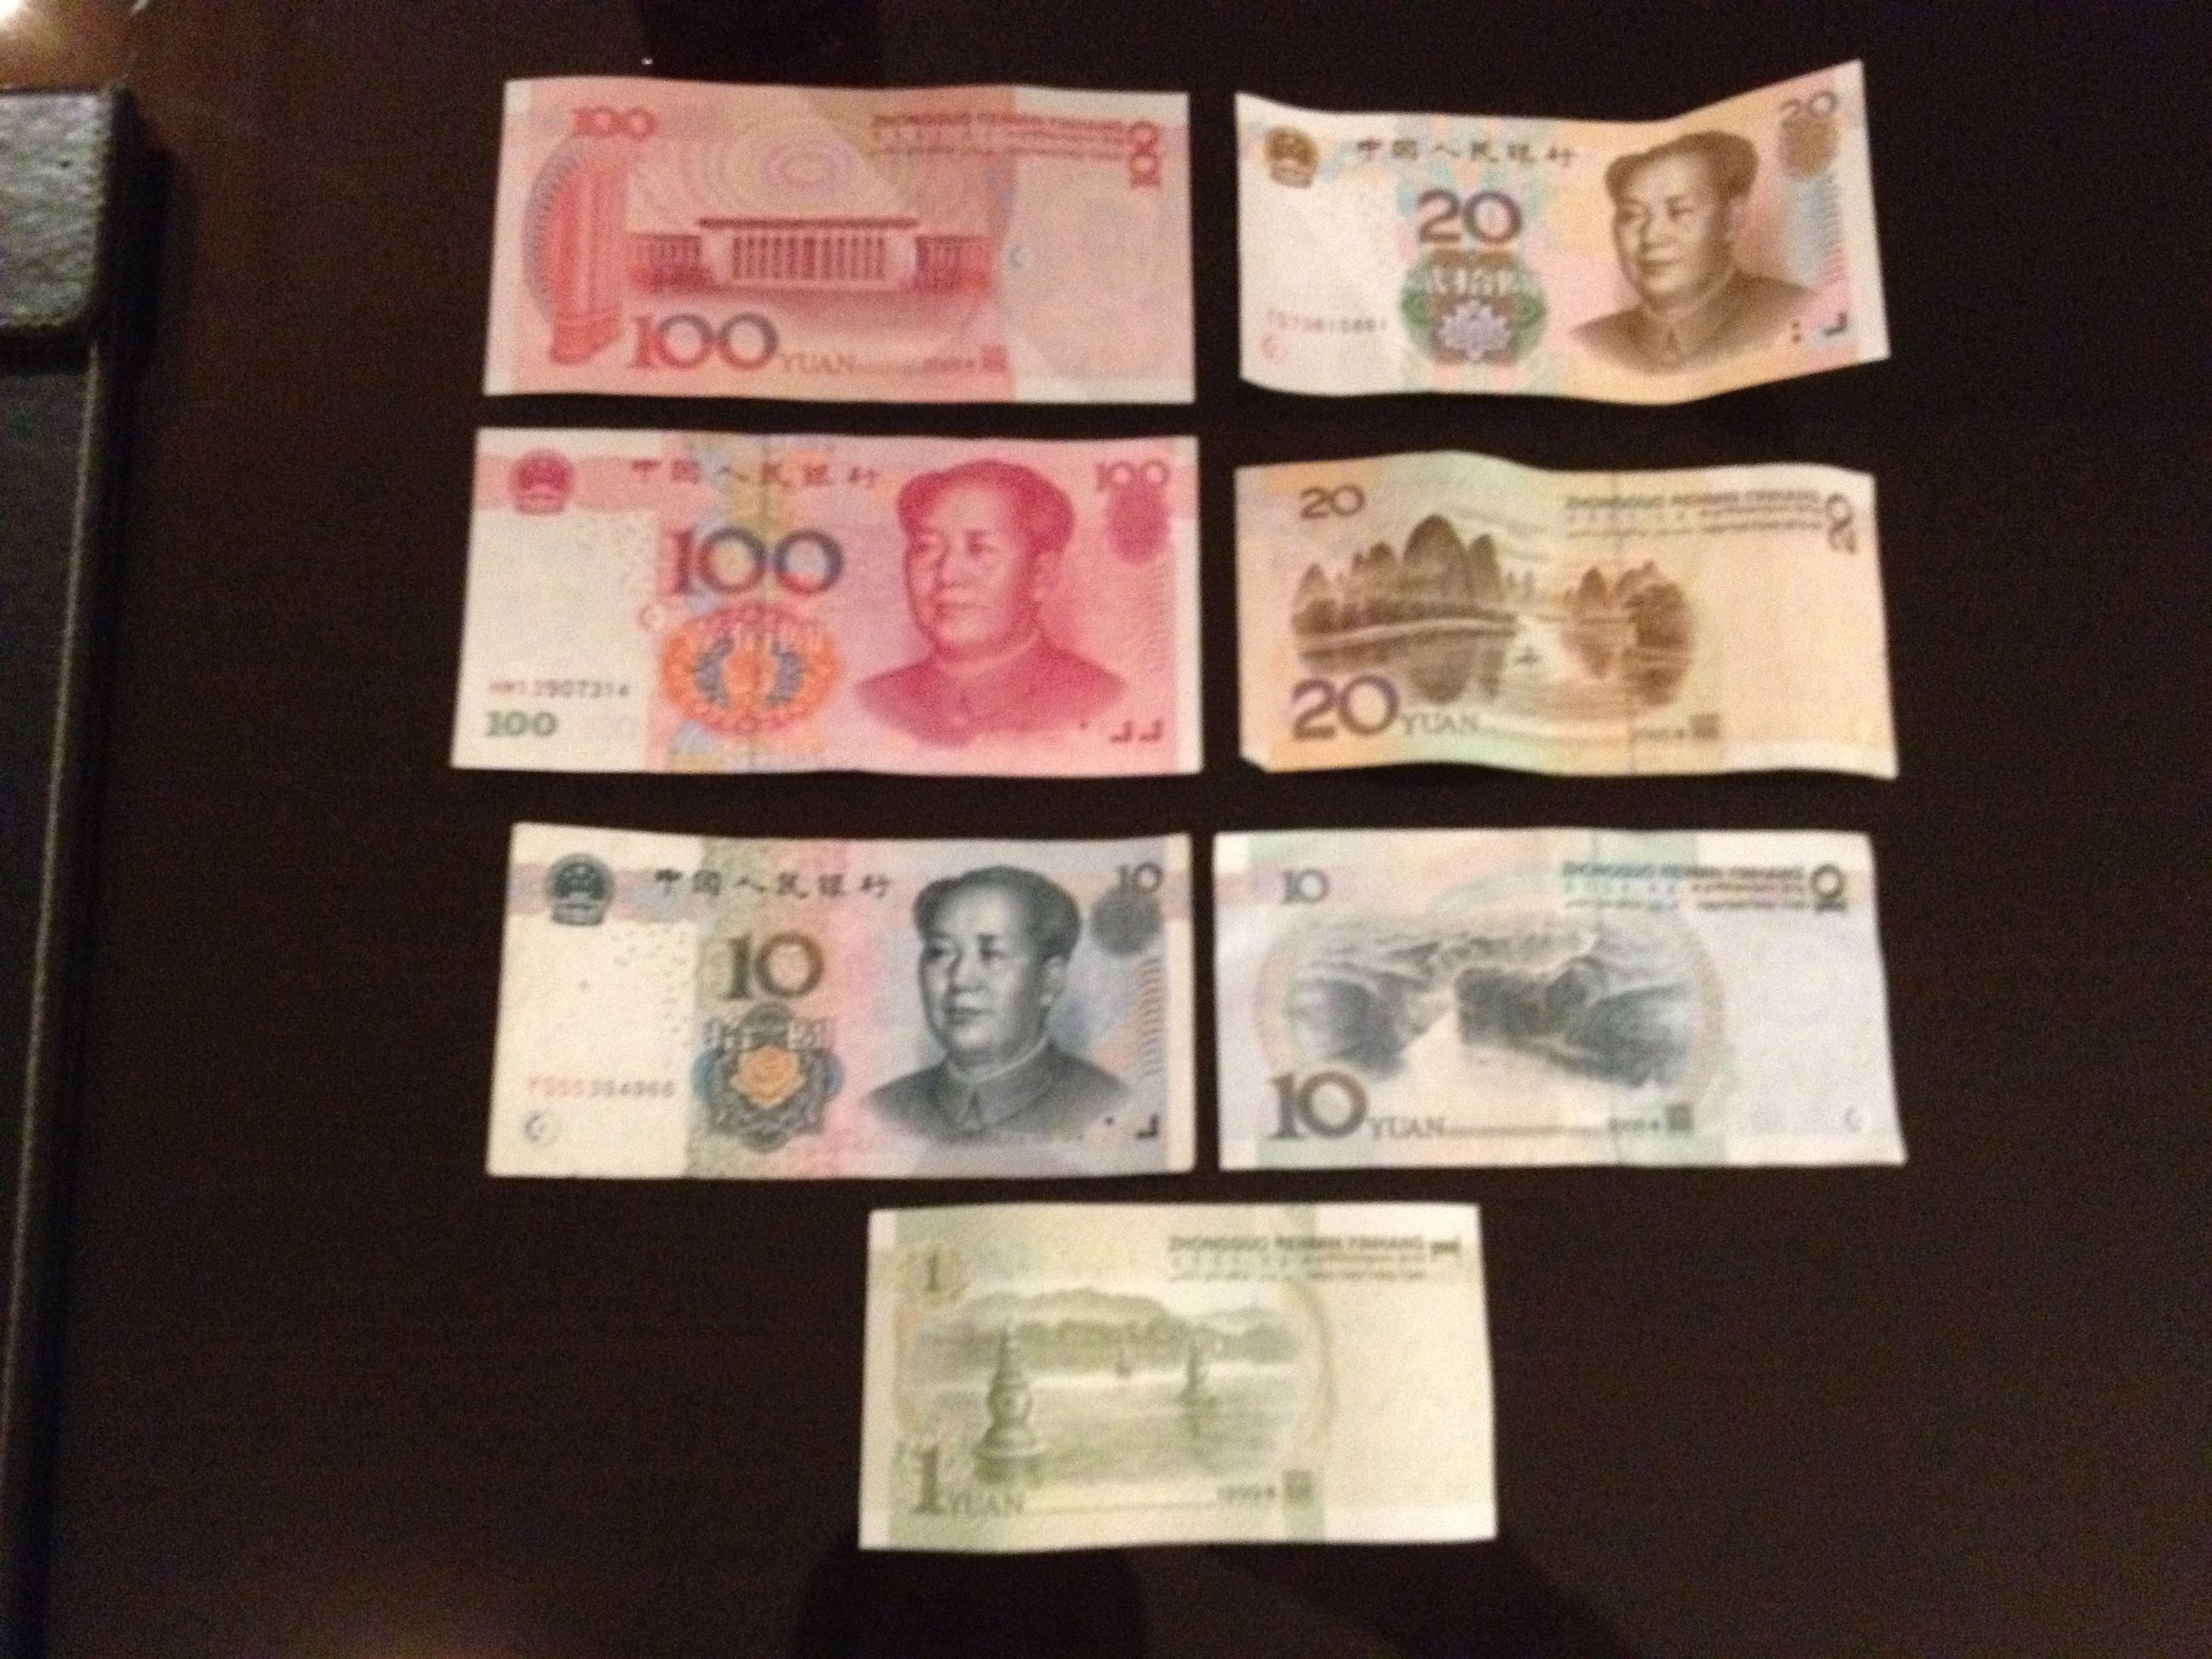 Each Bill Depicts Mau Zedong Chinas Communist Leader Who Founded The Peoples Republic Of China And Was Responsible For Cultural Revolution